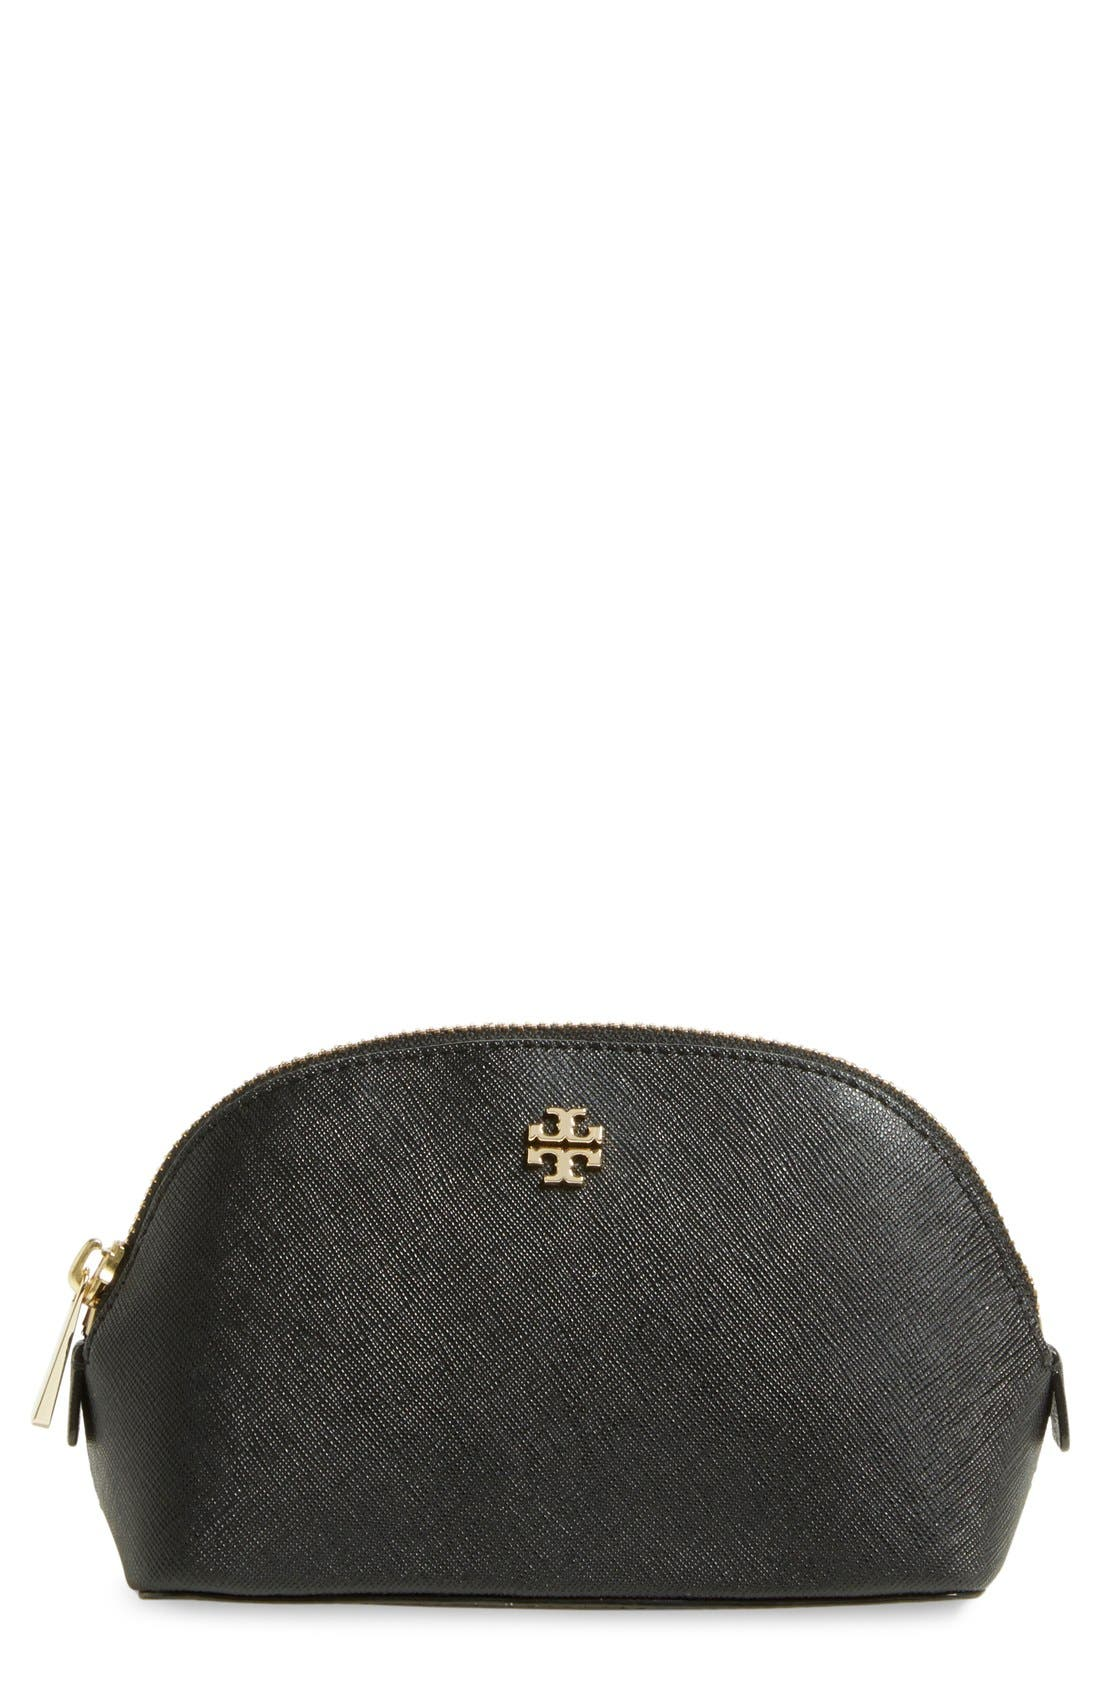 Tory Burch 'Small Robinson' Leather Cosmetics Case